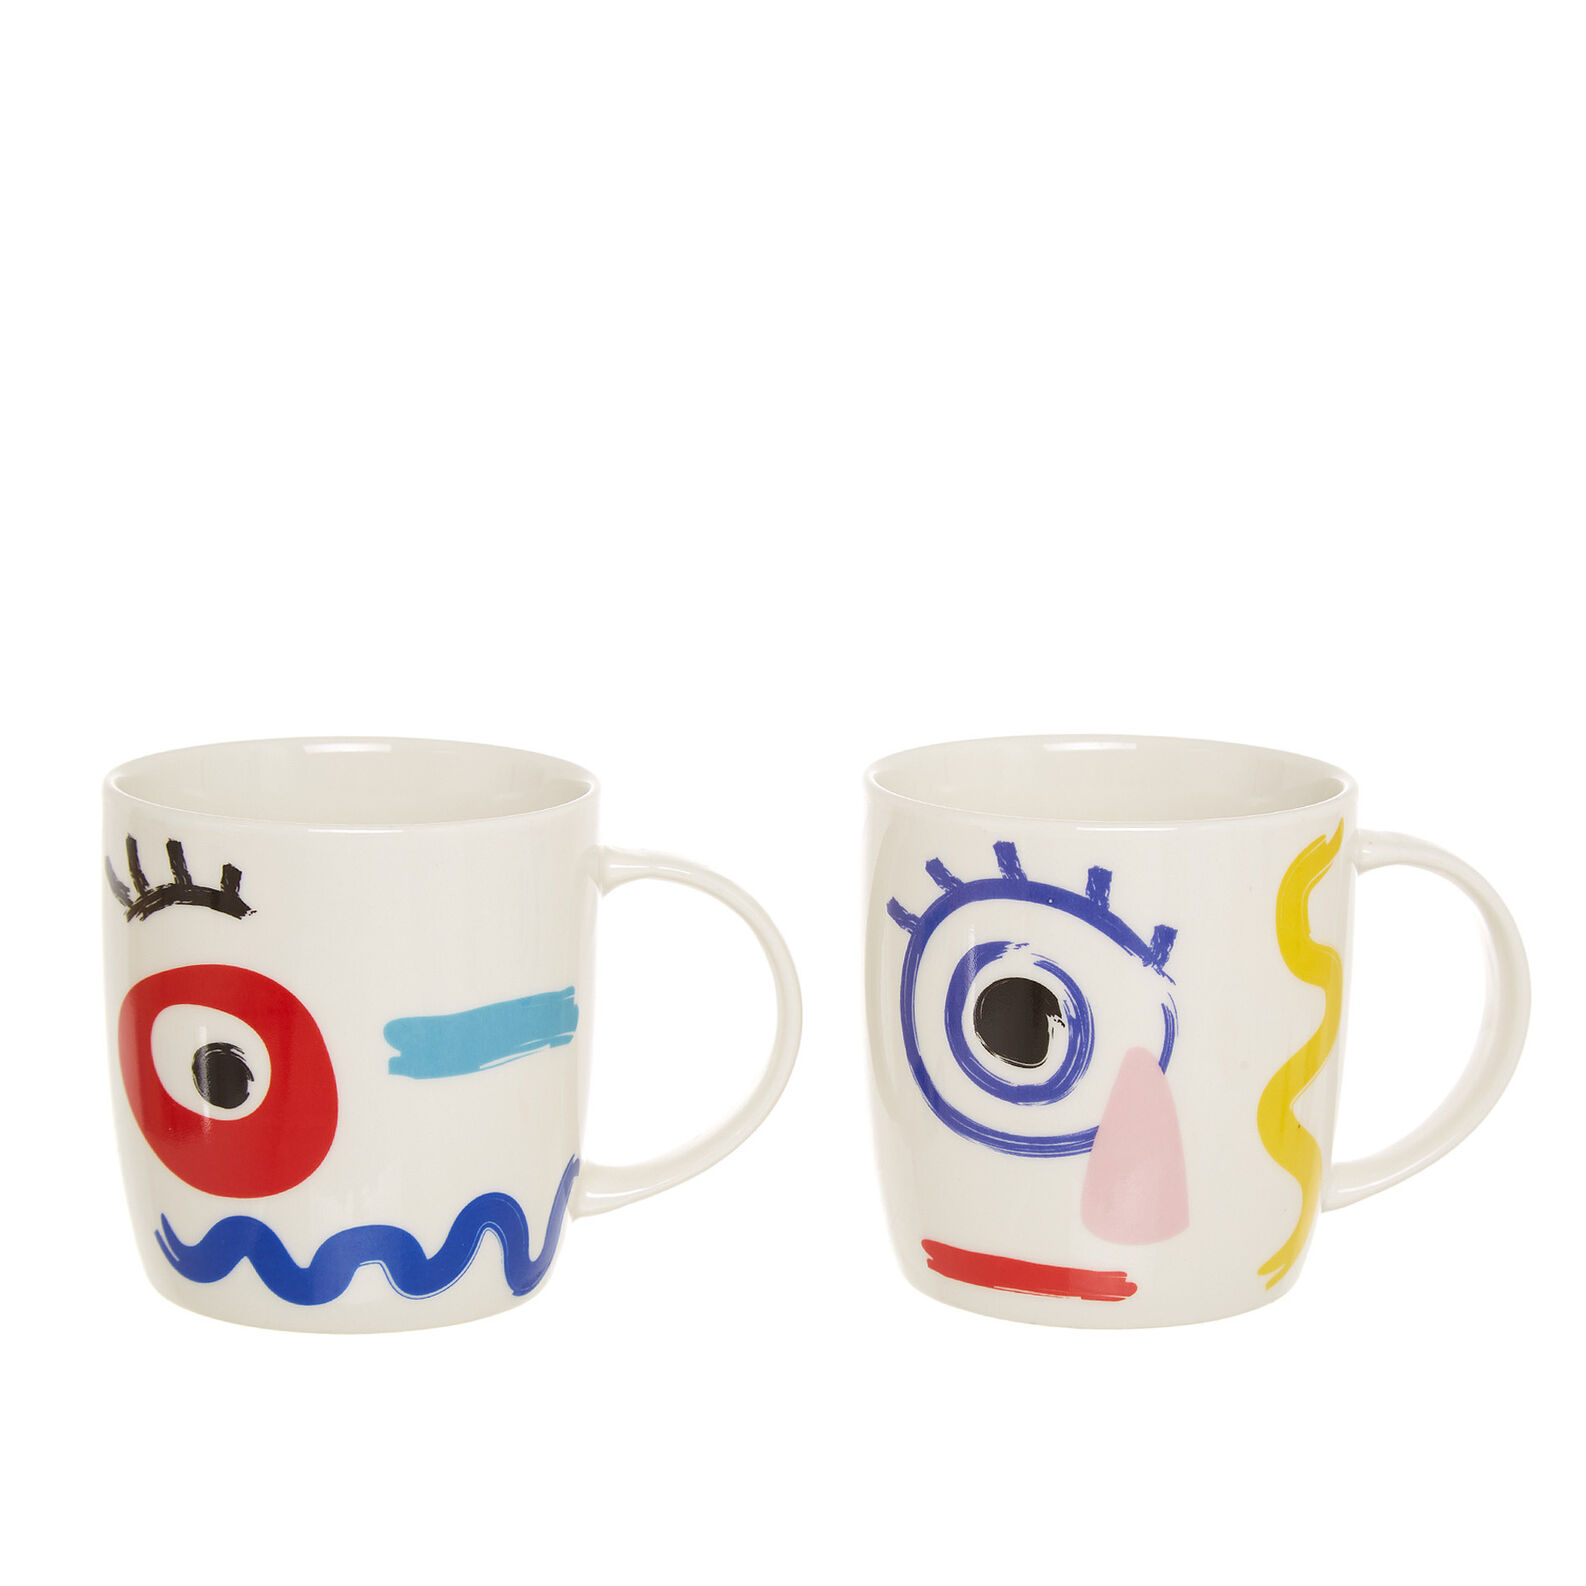 Mug in new bone China with abstract motif